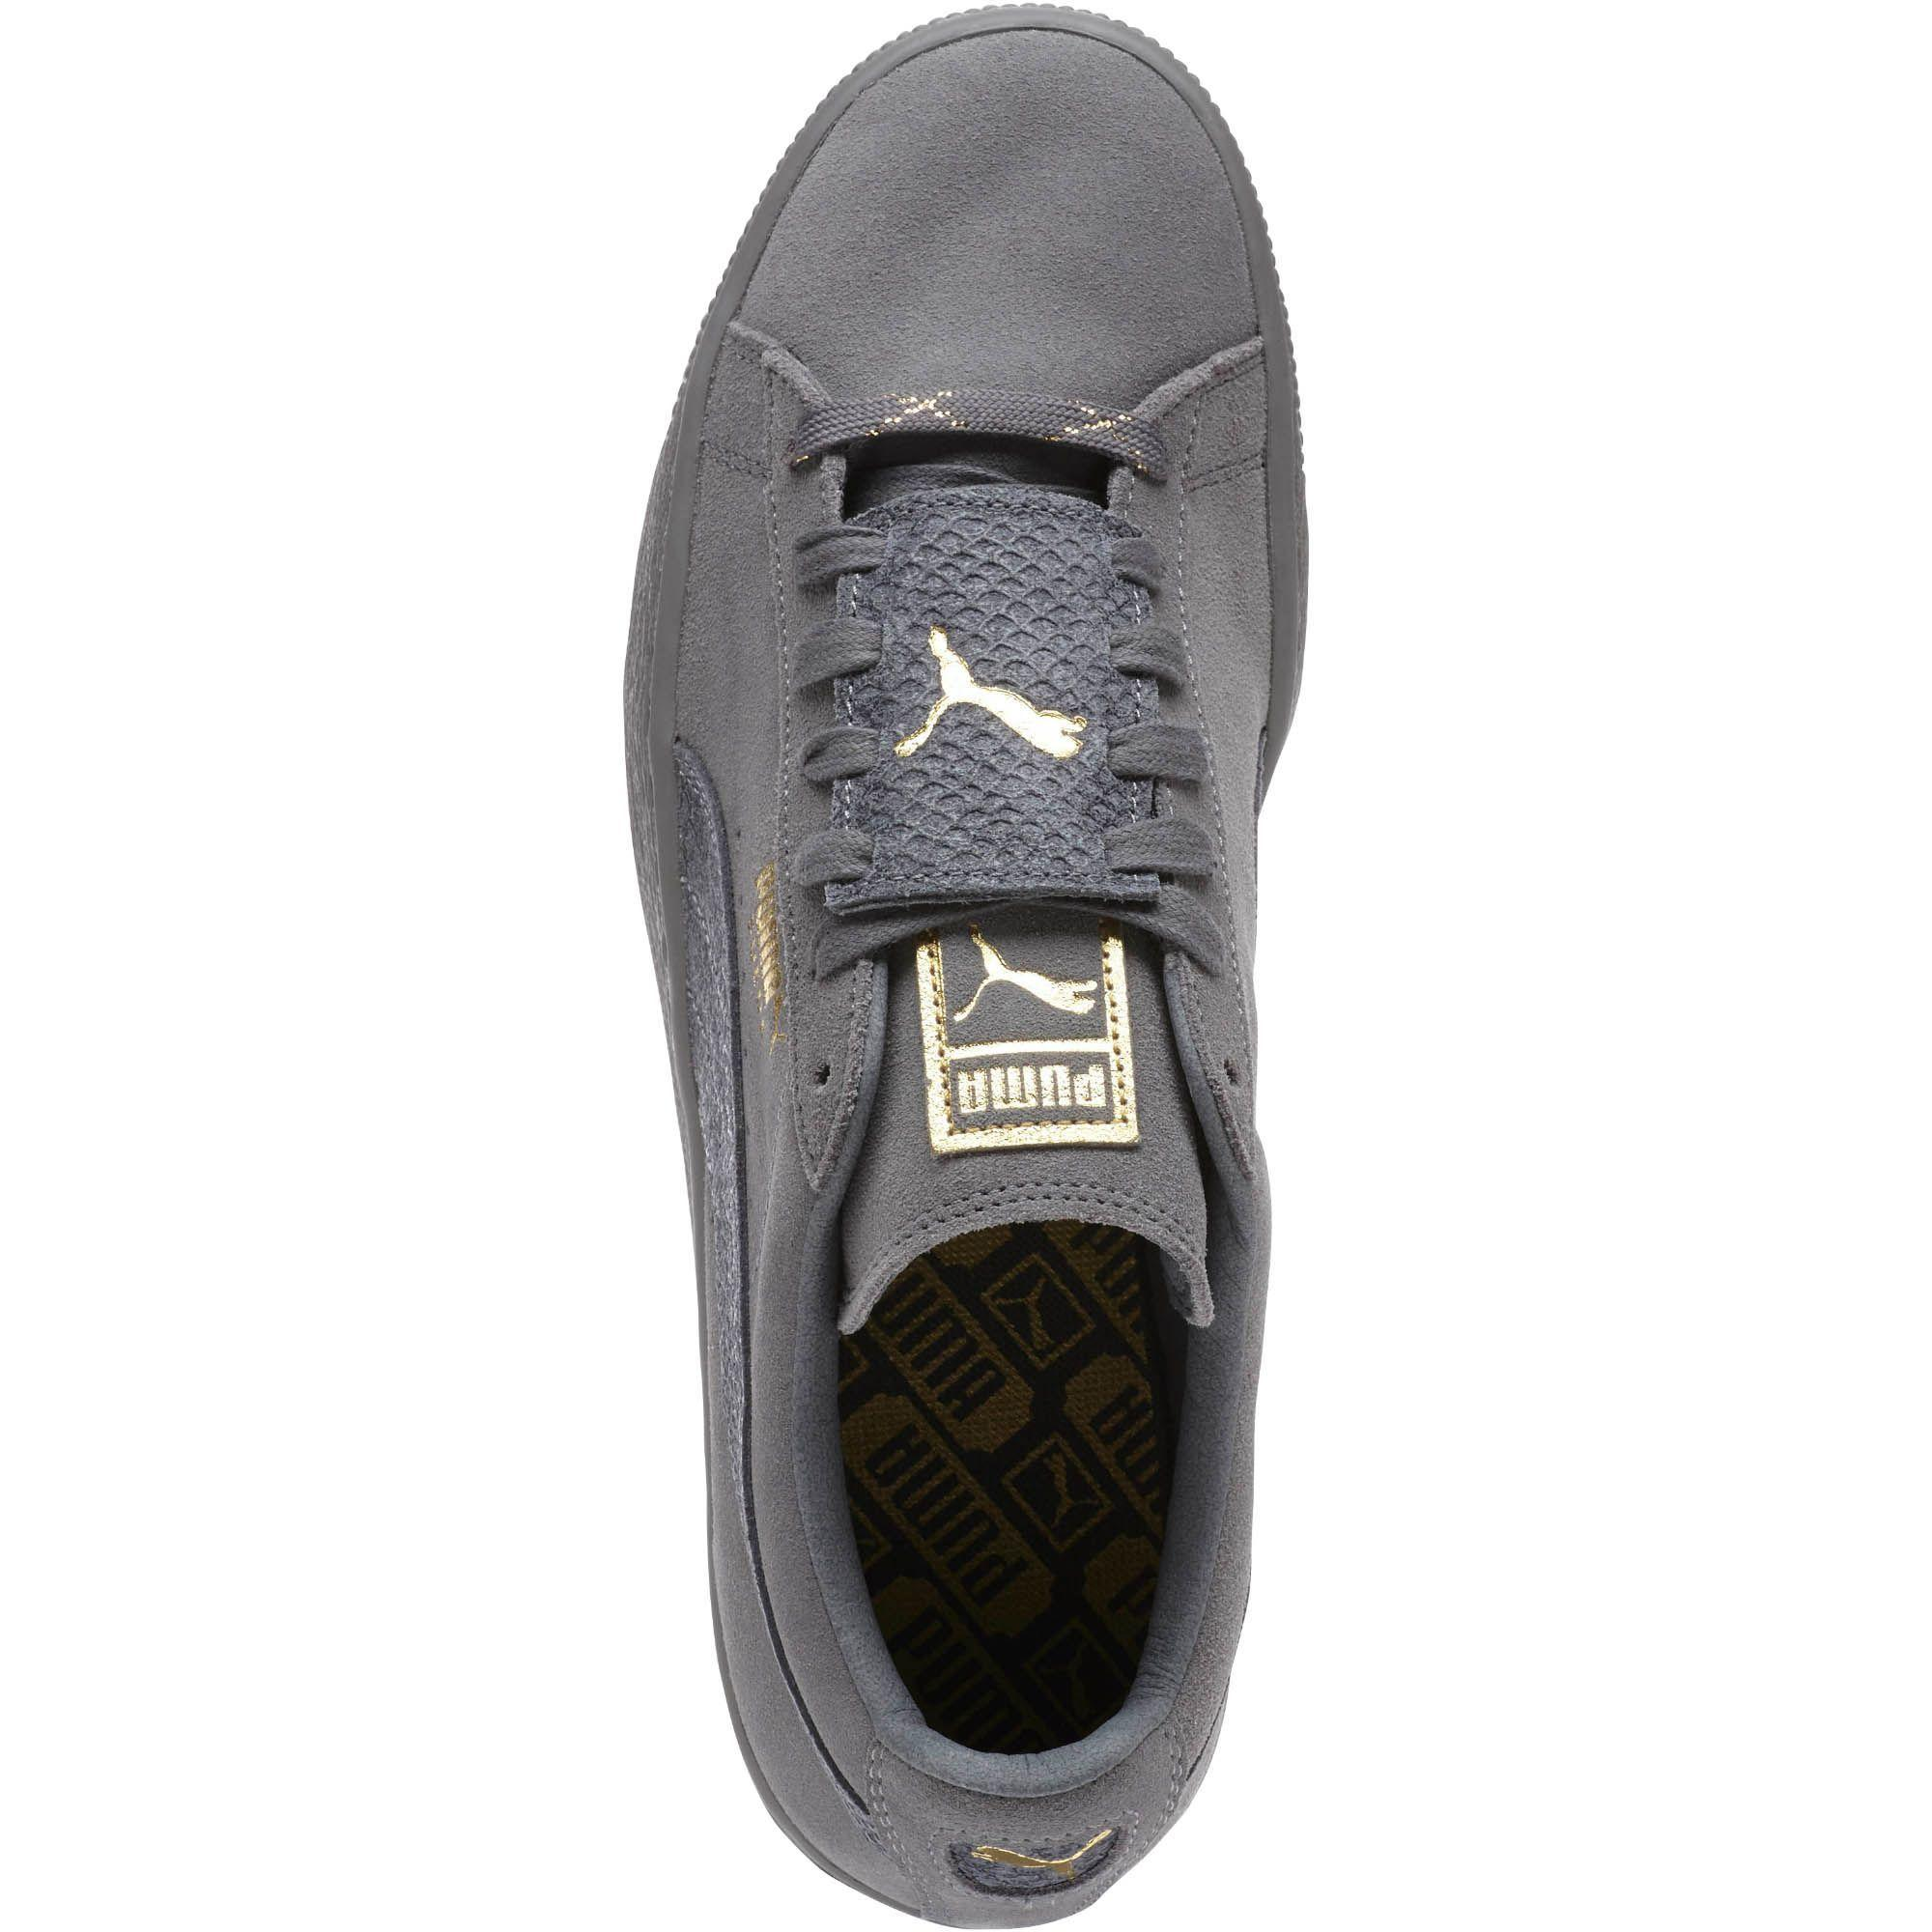 55739a26f1f8e6 Lyst - PUMA Suede Classic Epic Snake Gold Men s Sneakers in Gray for Men